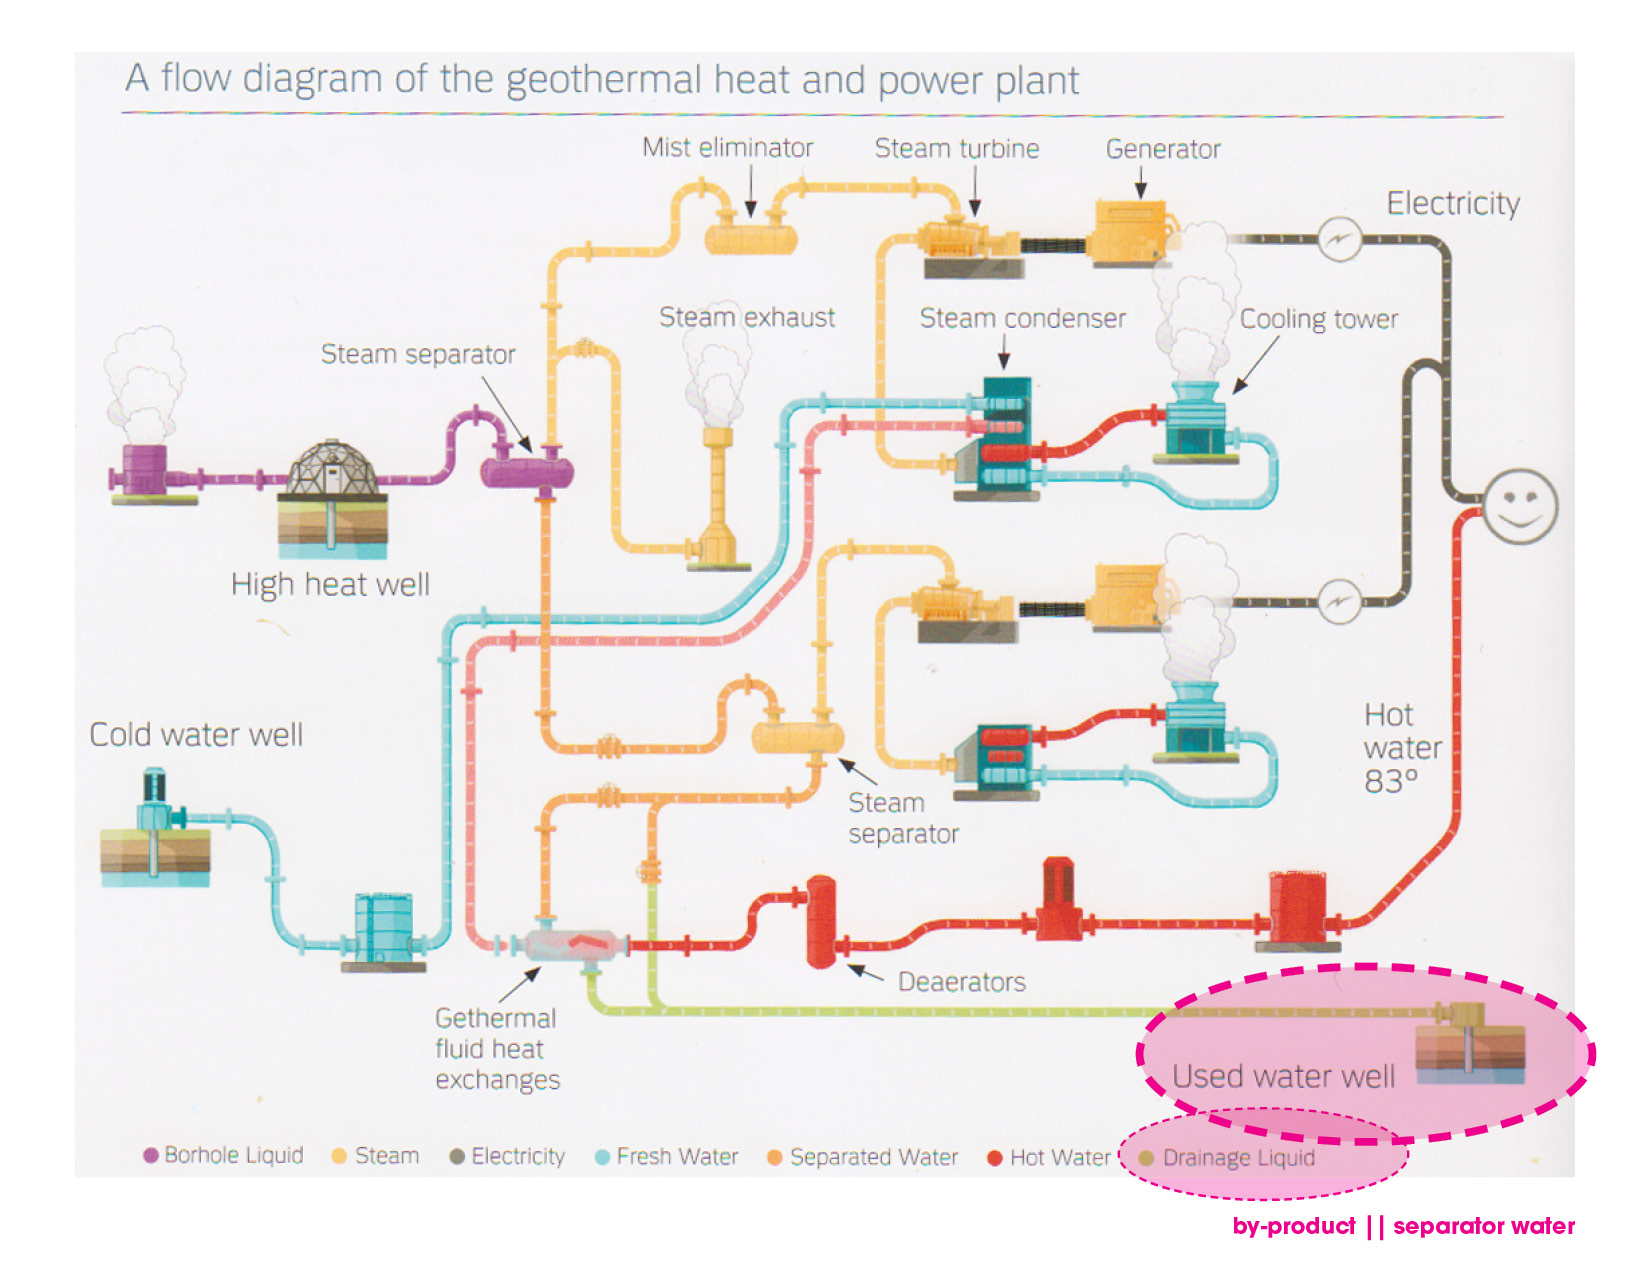 Power Station Uva Mla Howland Fellowship 2011 Landscapes Of Plant Diagram Pictures Source For Flow